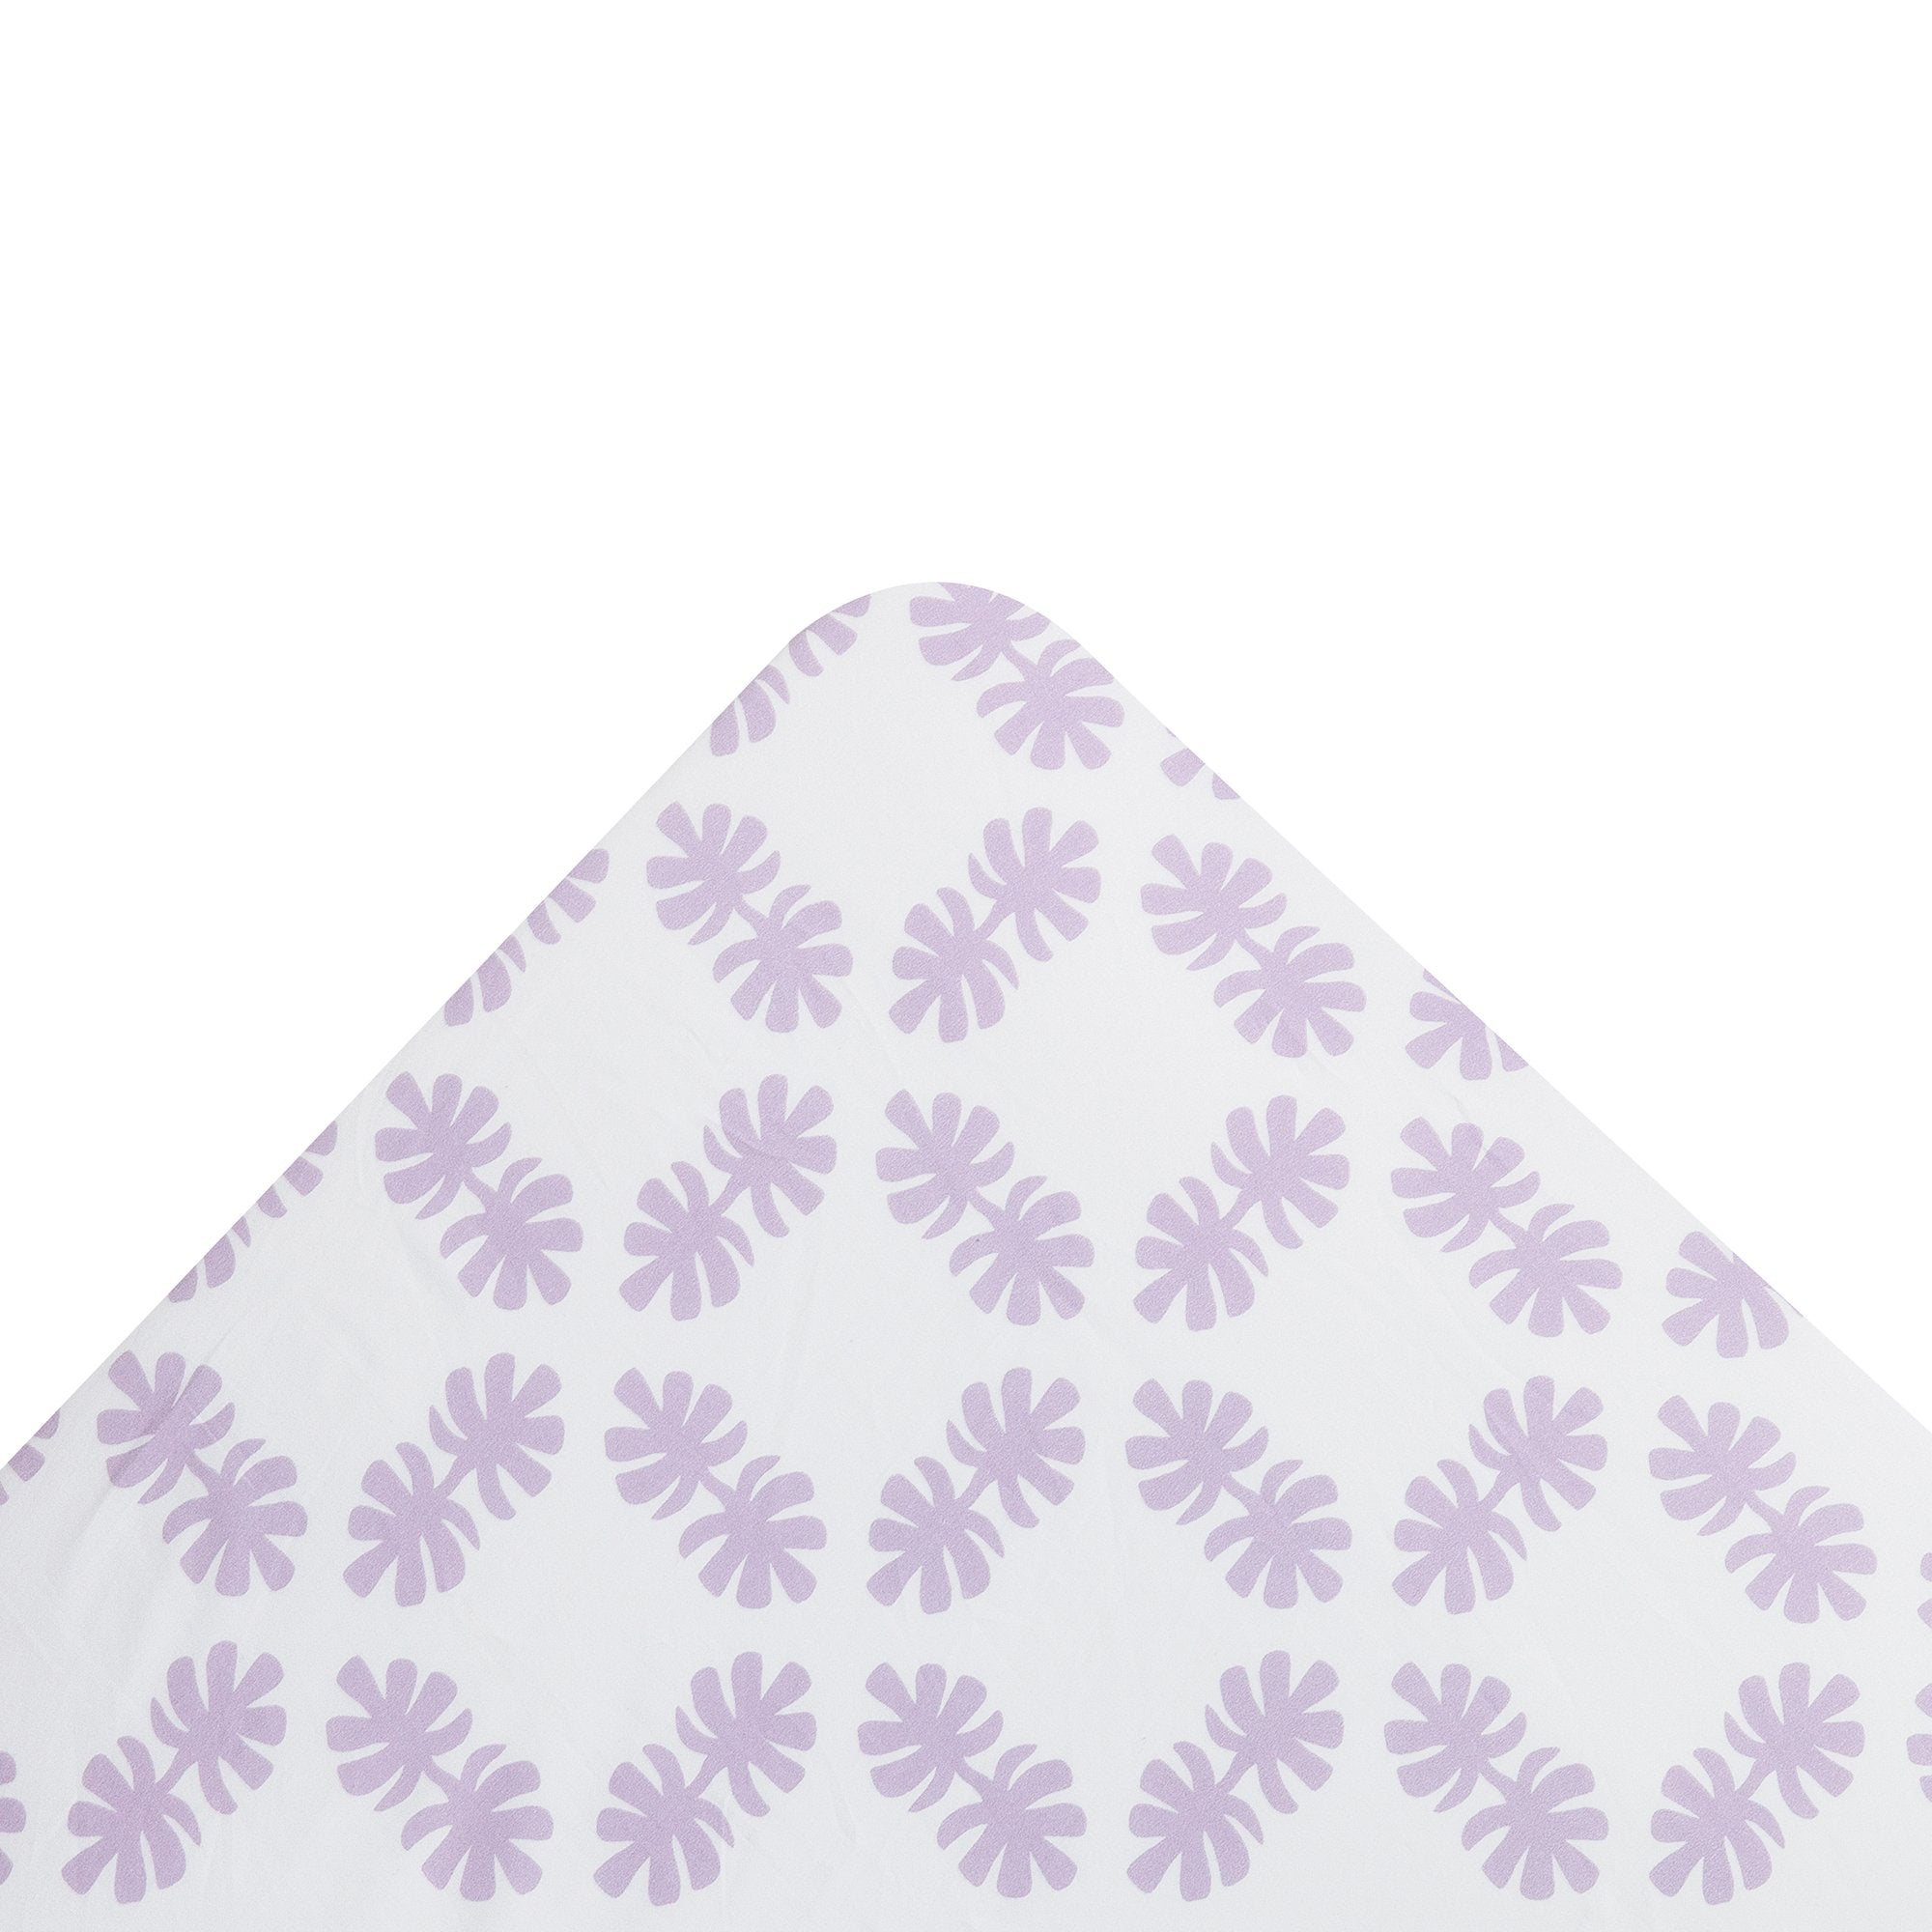 Kikau's Lovely Lilac Coco Palm kids fitted sheet on white background